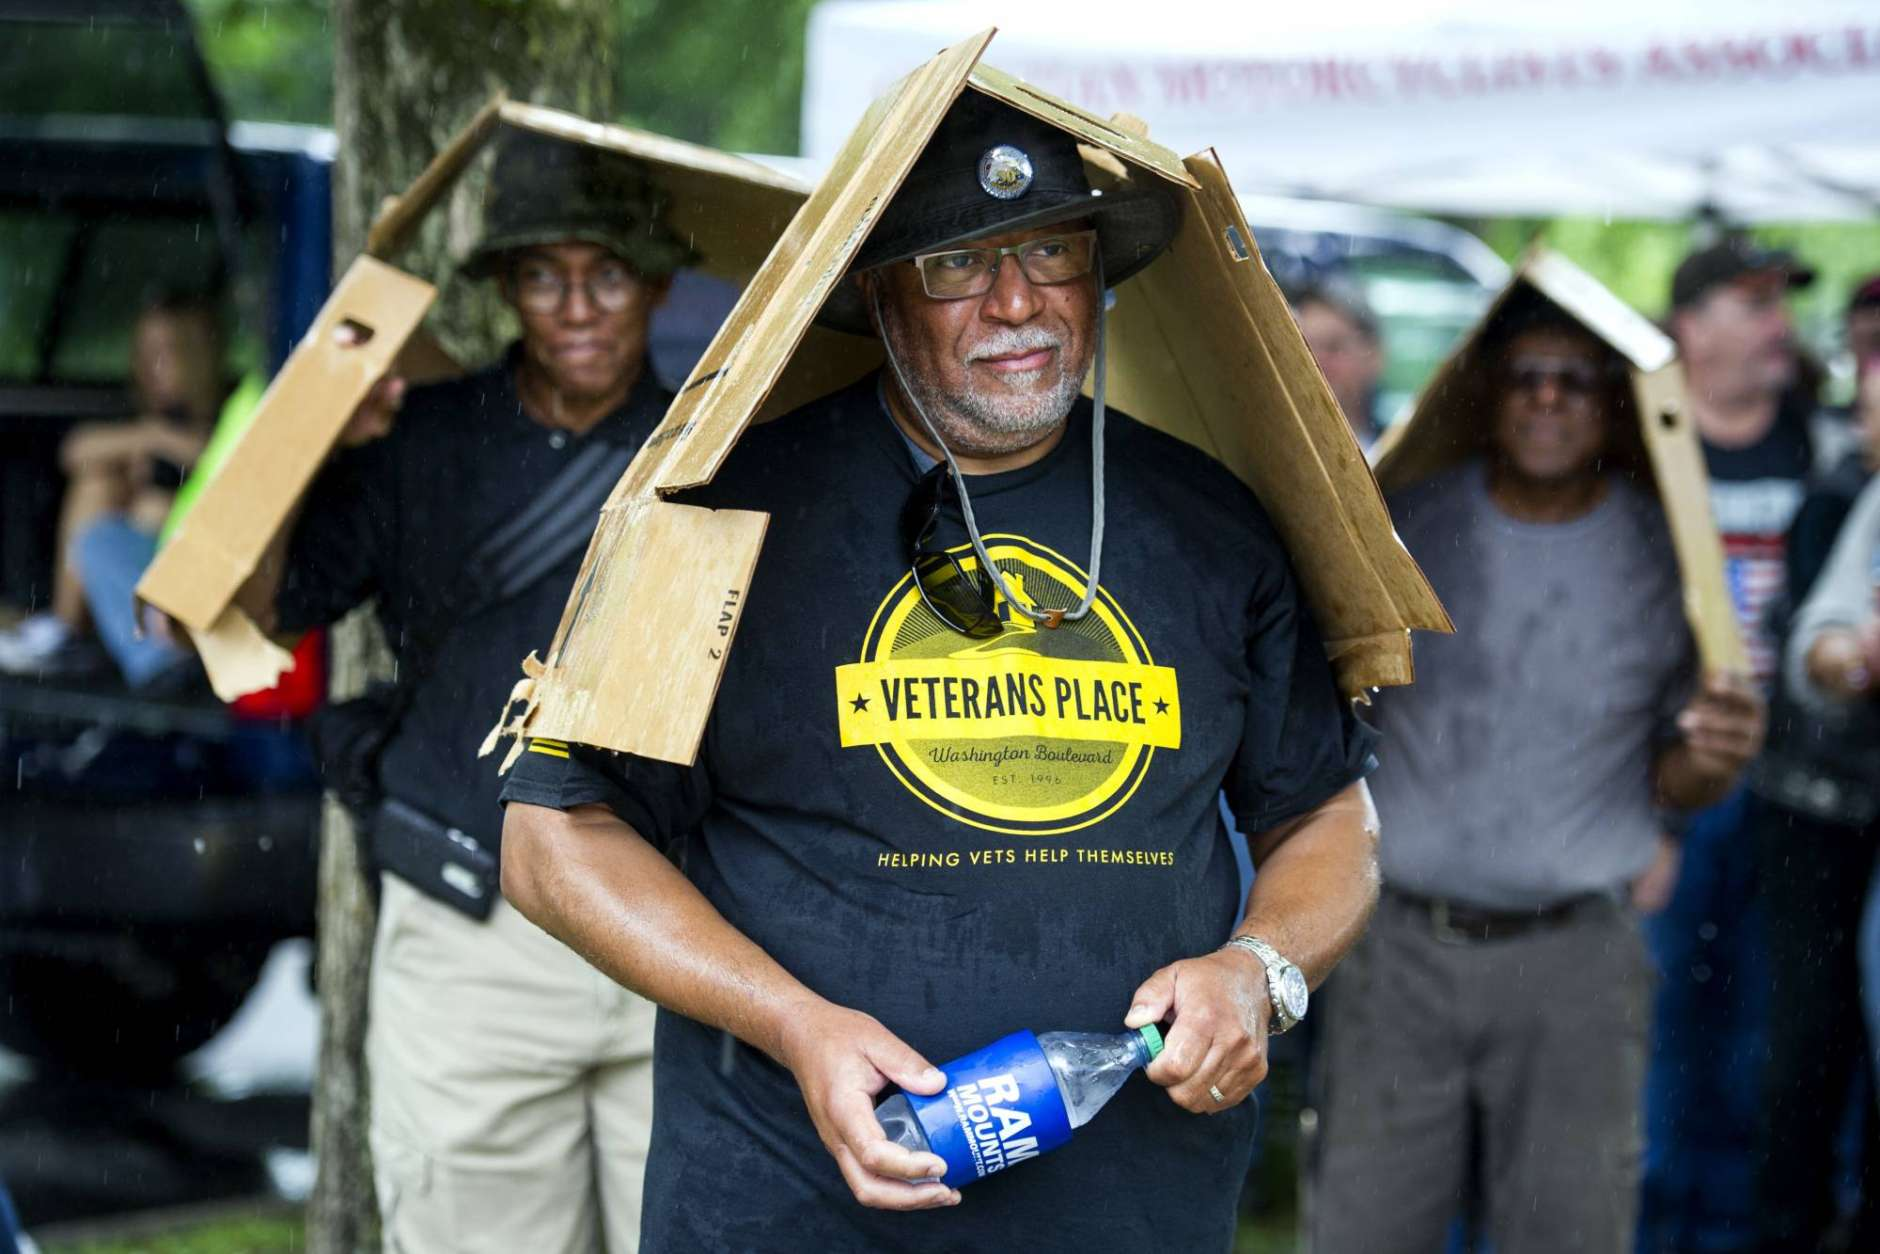 Three men watching motorcyclists, use cardboard boxes as umbrellas while it rains on the 30th anniversary of the Rolling Thunder 'Ride for Freedom' demonstration in Washington, Sunday, May 28, 2017. Rolling Thunder seeks to bring full accountability for all U.S. prisoners of war and missing in action (POW/MIA) soldiers. (AP Photo/Cliff Owen)